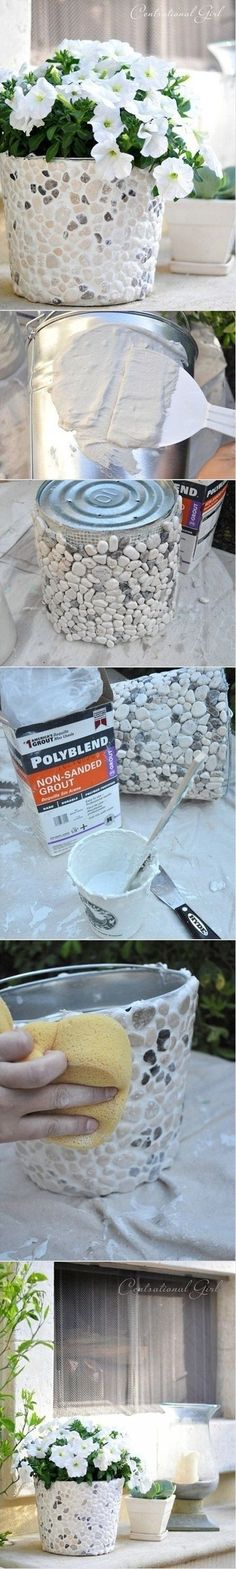 Make your own flower pot! flowerpot what a great idea for those flowers you like to put on your patio or deck